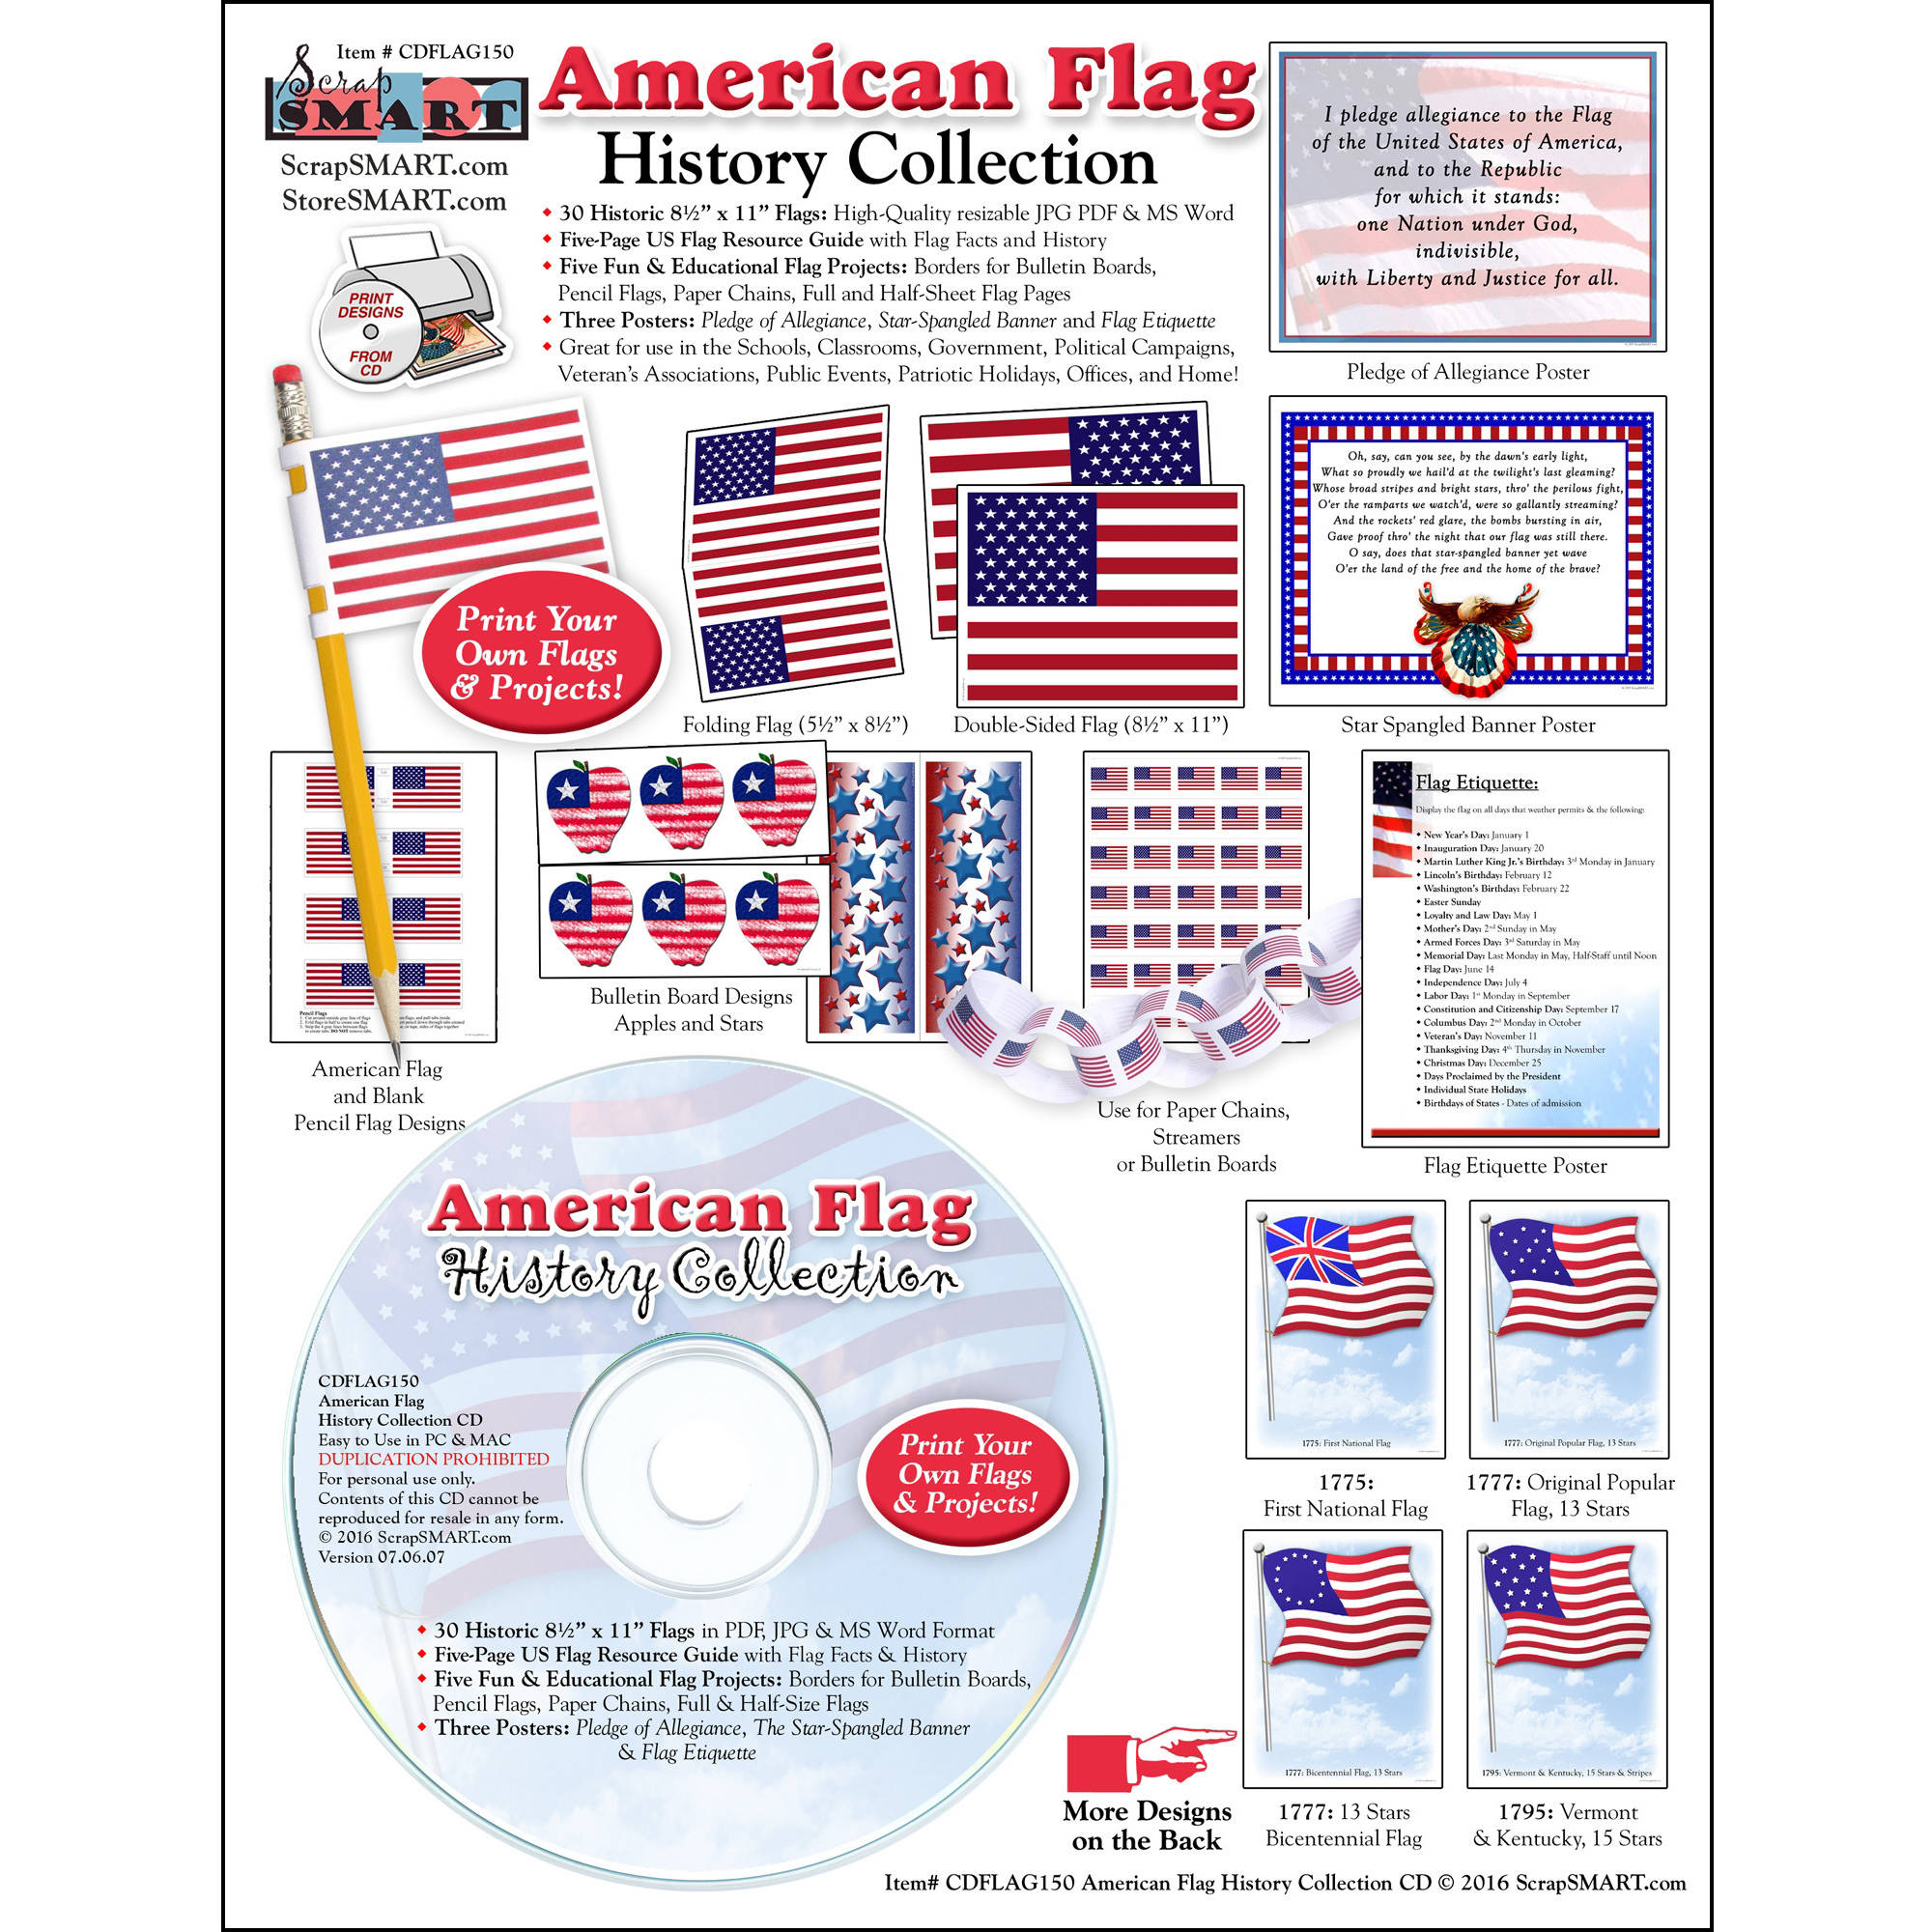 Free clip art on history collection cliparts for The american flag history